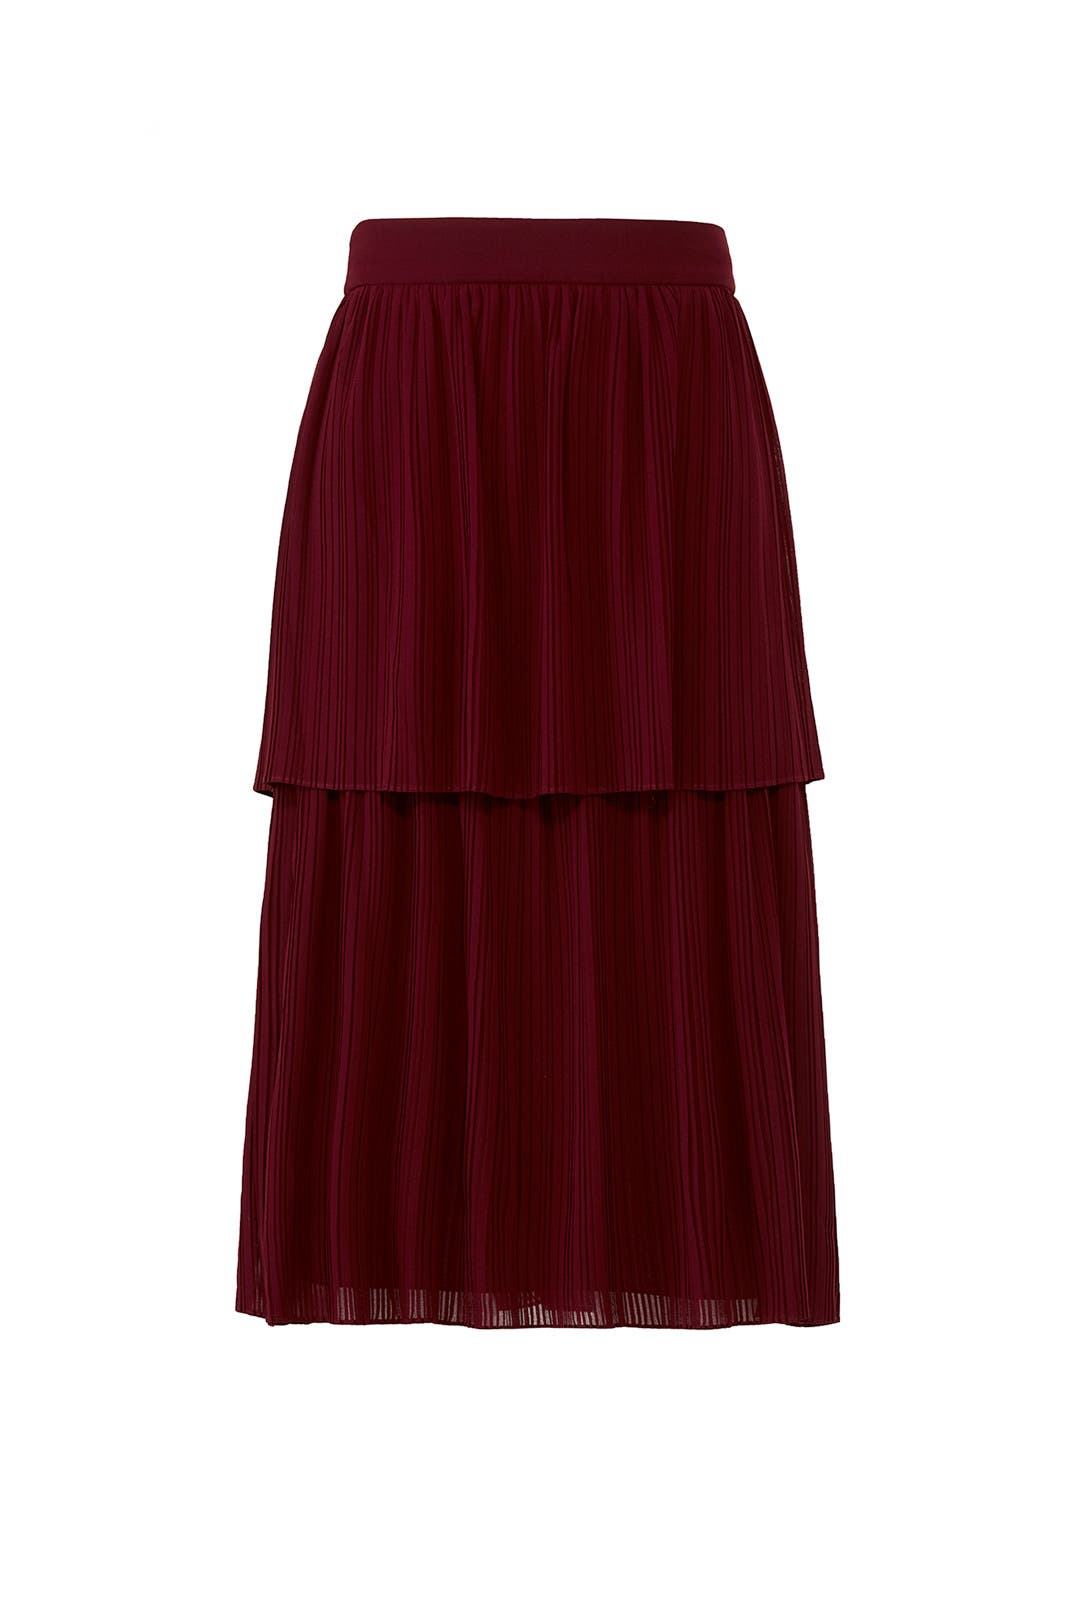 57fea66739 The Roman Skirt by Fame & Partners for $45 | Rent the Runway